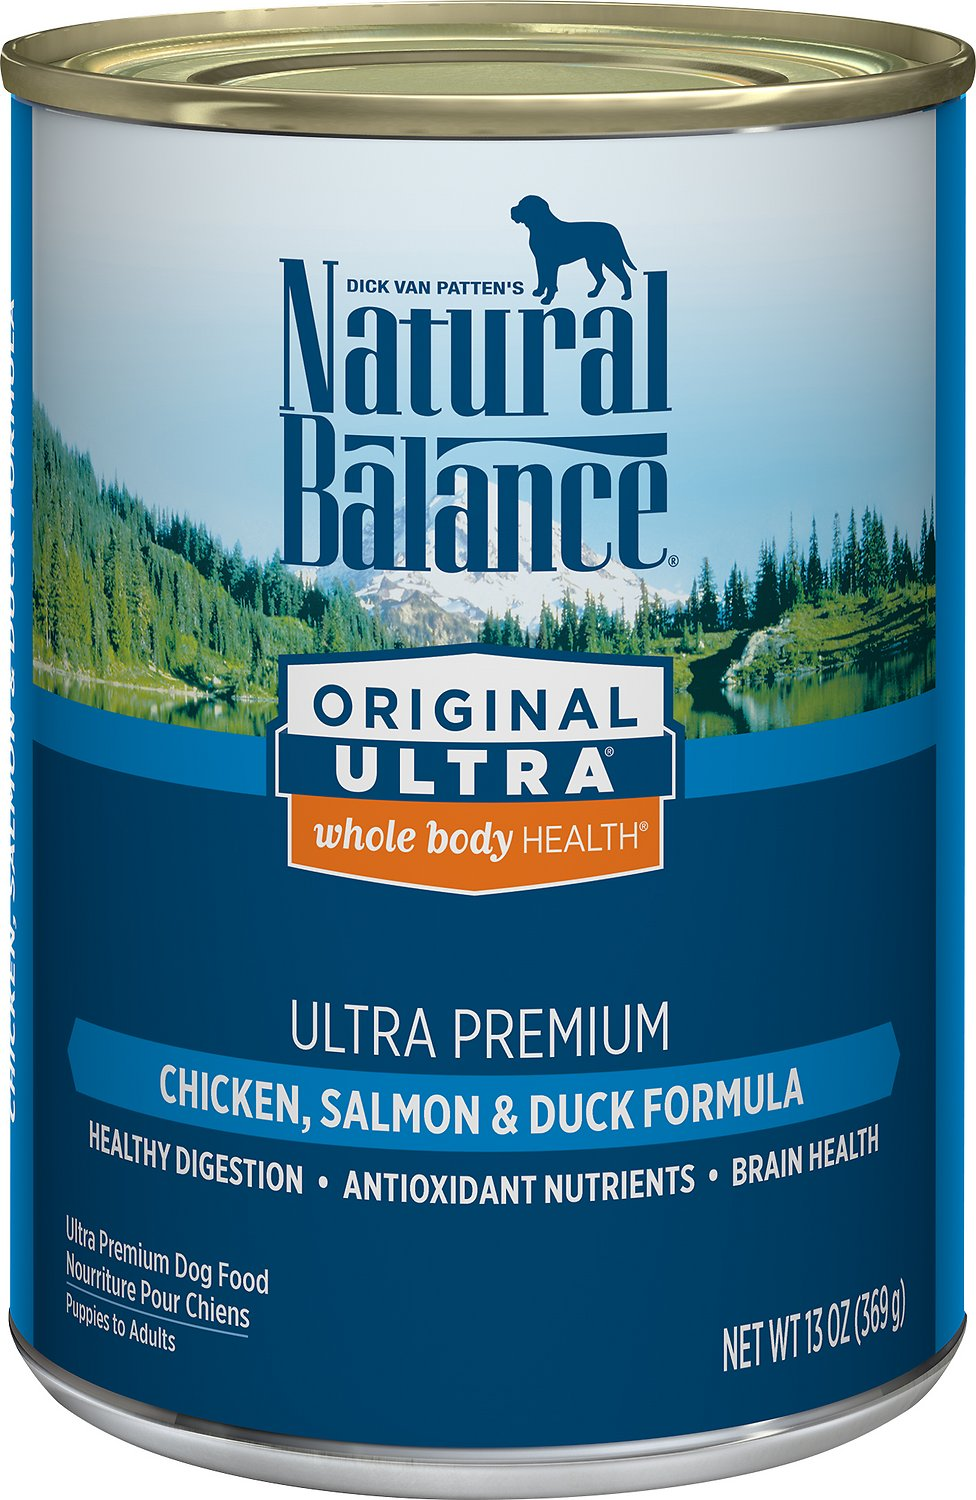 Natural Balance Original Ultra Dog Food Best Buy Car